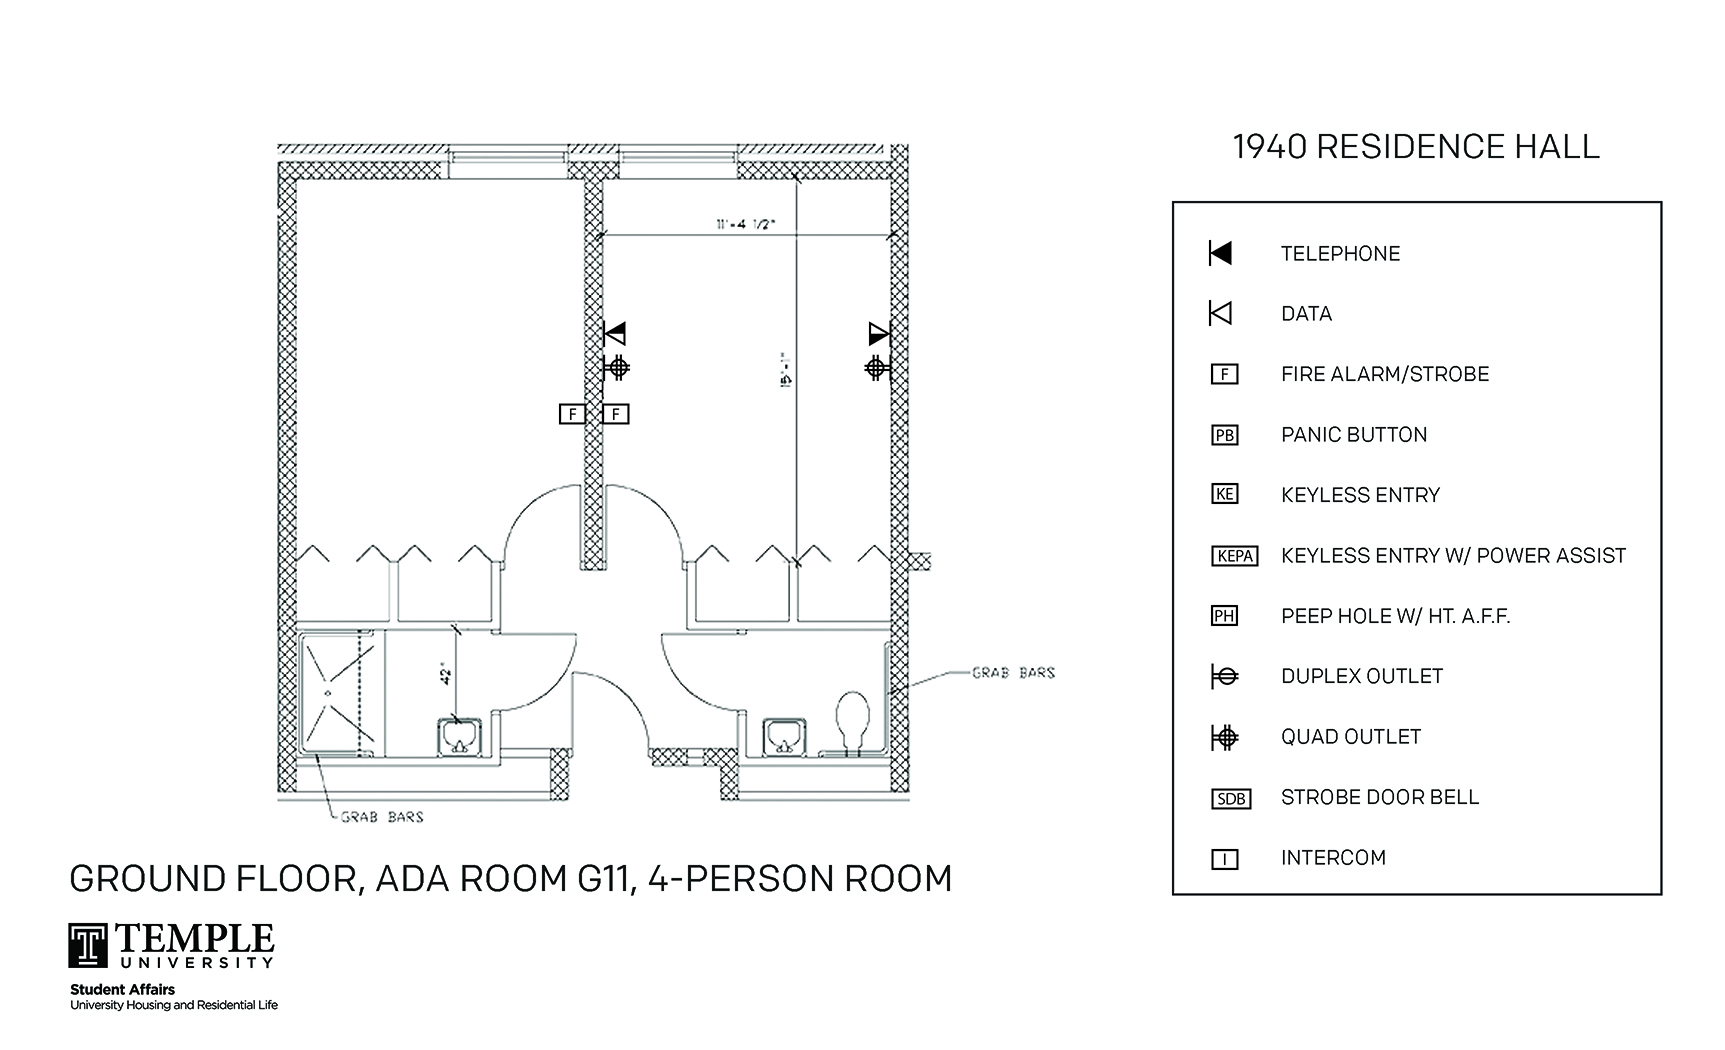 Accessible Room Diagrams: 4 person, 2 bedroom Suite - G11